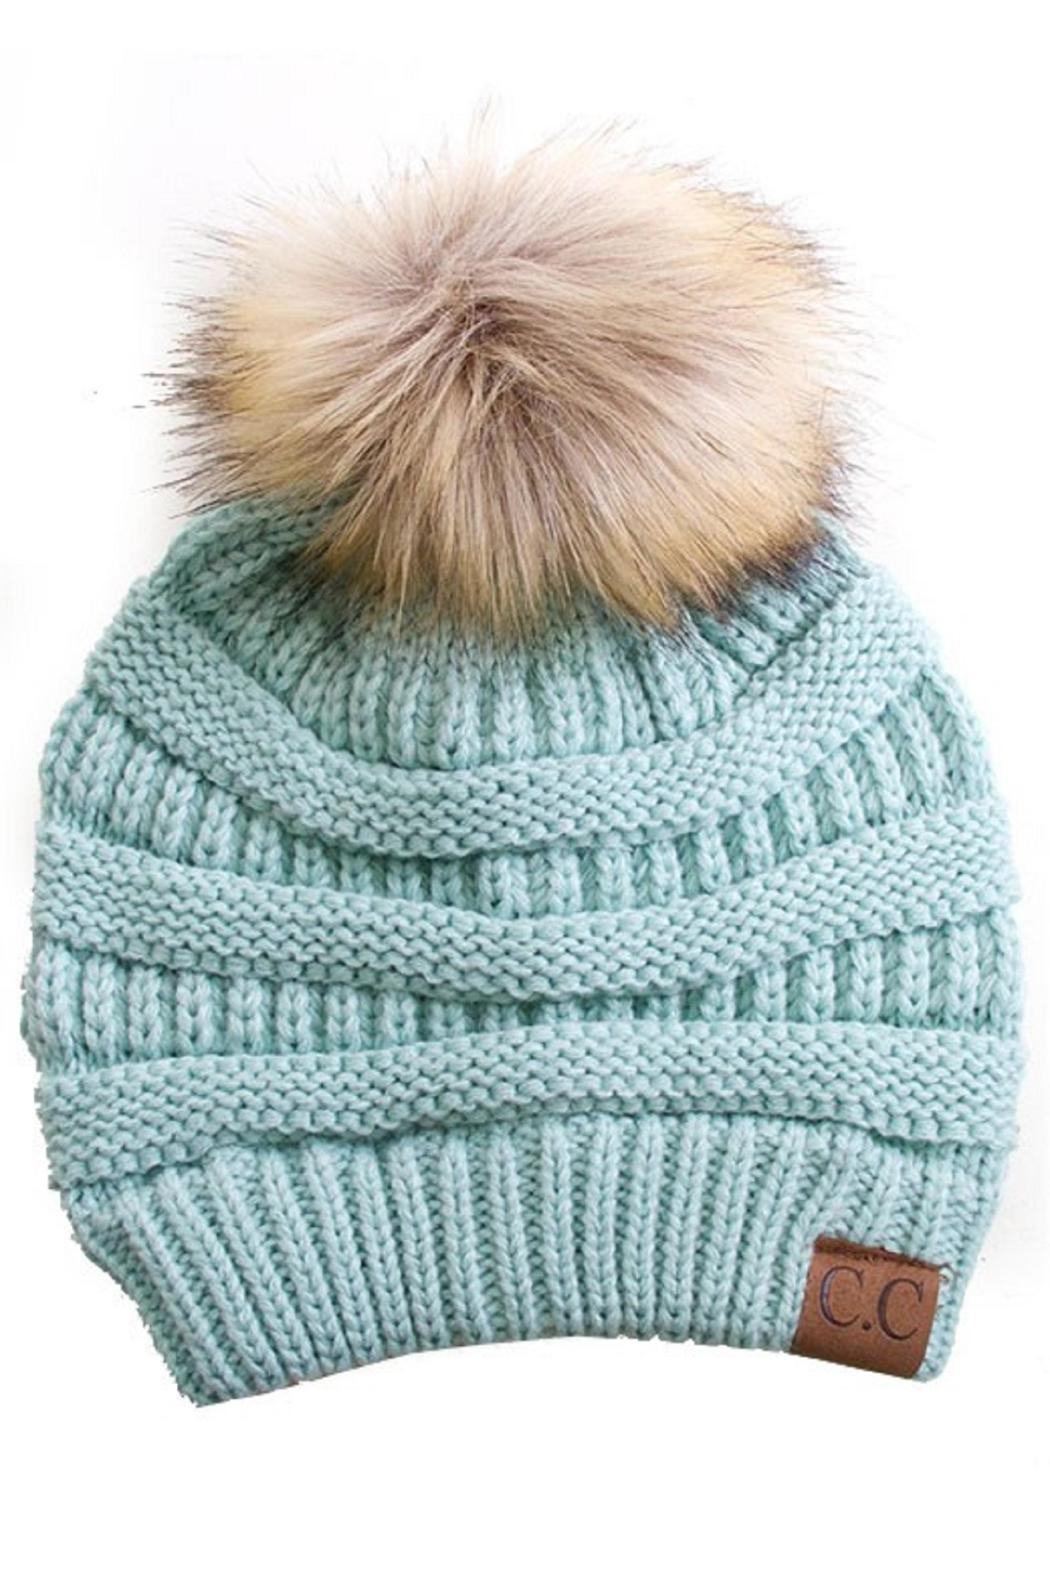 5ae66e682577a C.C Beanie The Dani Hat from Minneapolis by StyleTrolley